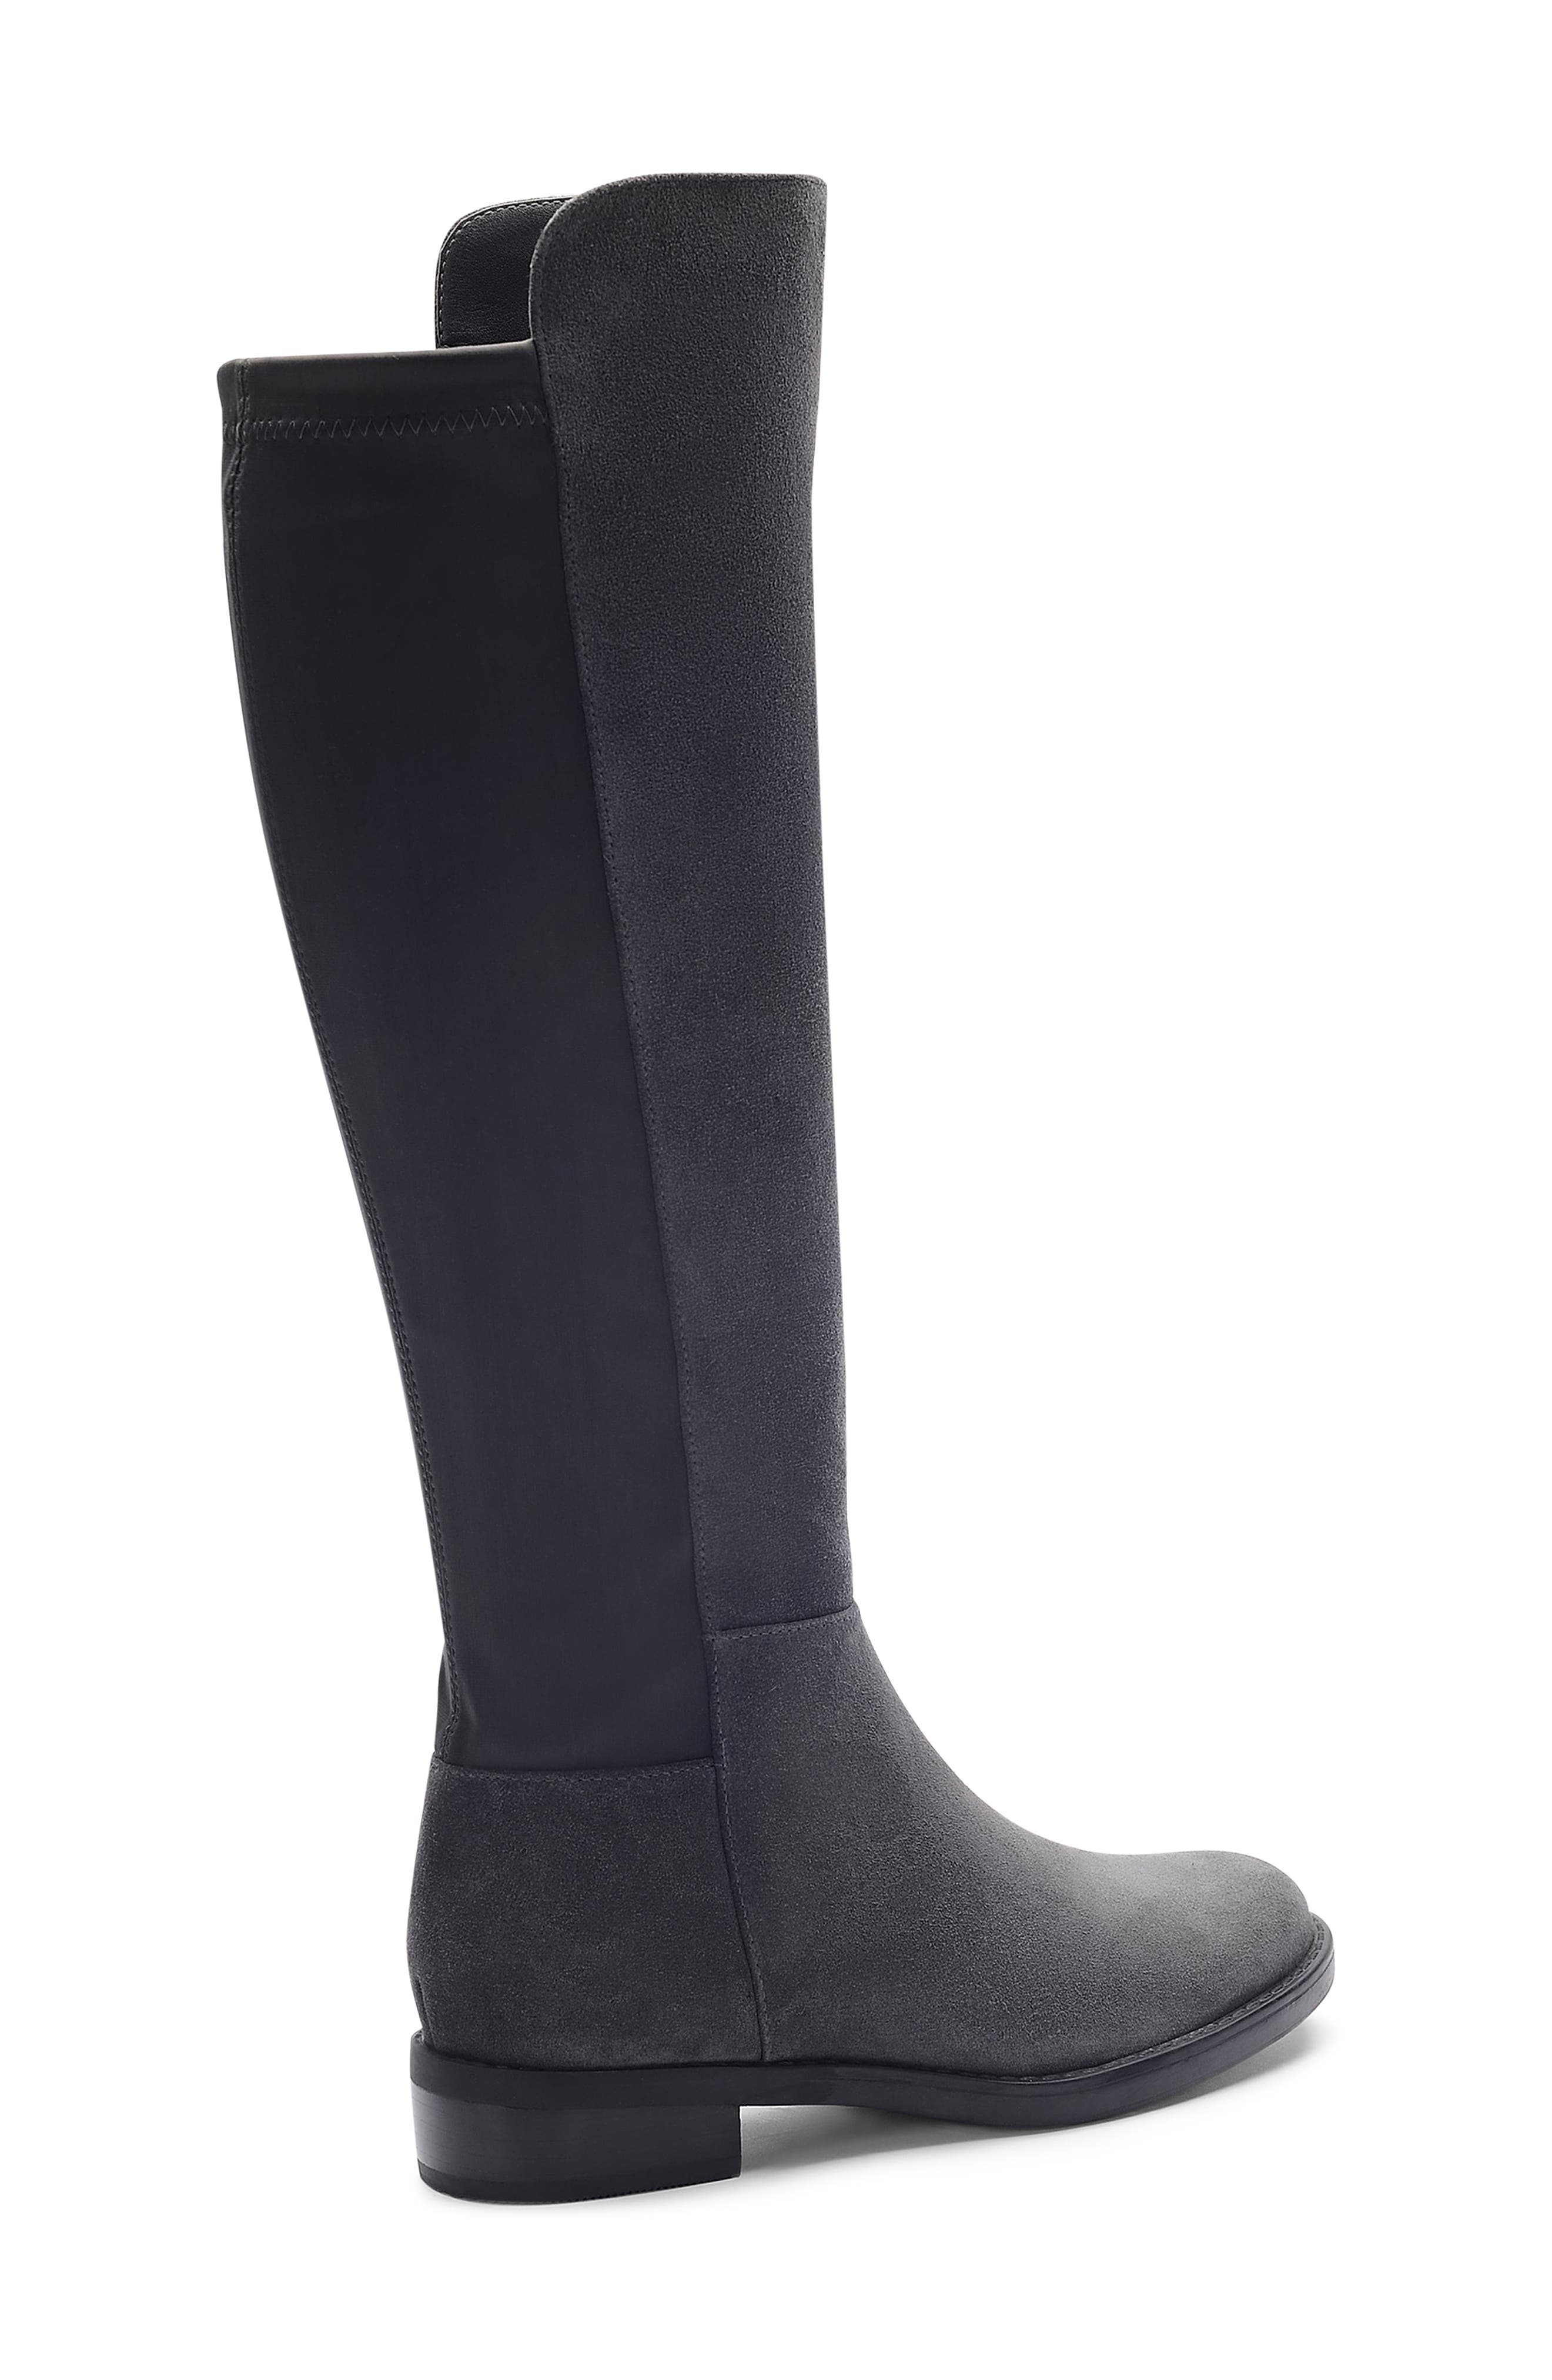 BLONDO, Ellie Waterproof Knee High Riding Boot, Alternate thumbnail 7, color, DARK GREY SUEDE